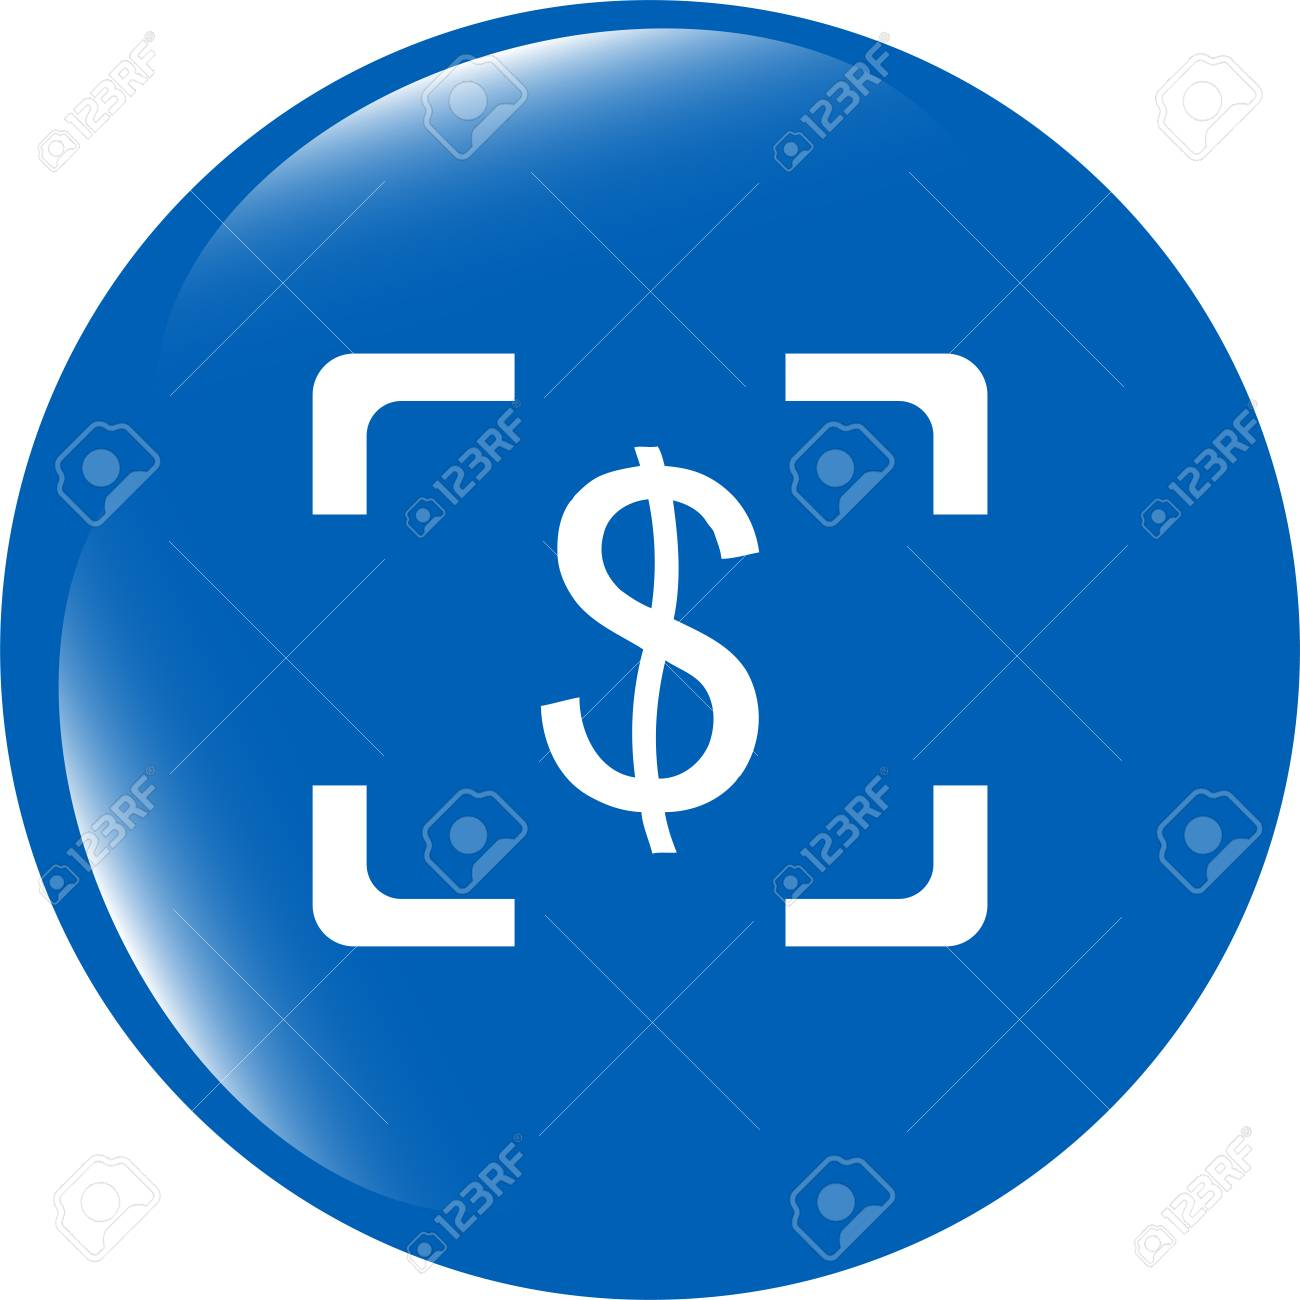 Currency exchange sign icon currency converter symbol money currency exchange sign icon currency converter symbol money label shiny button modern stopboris Image collections